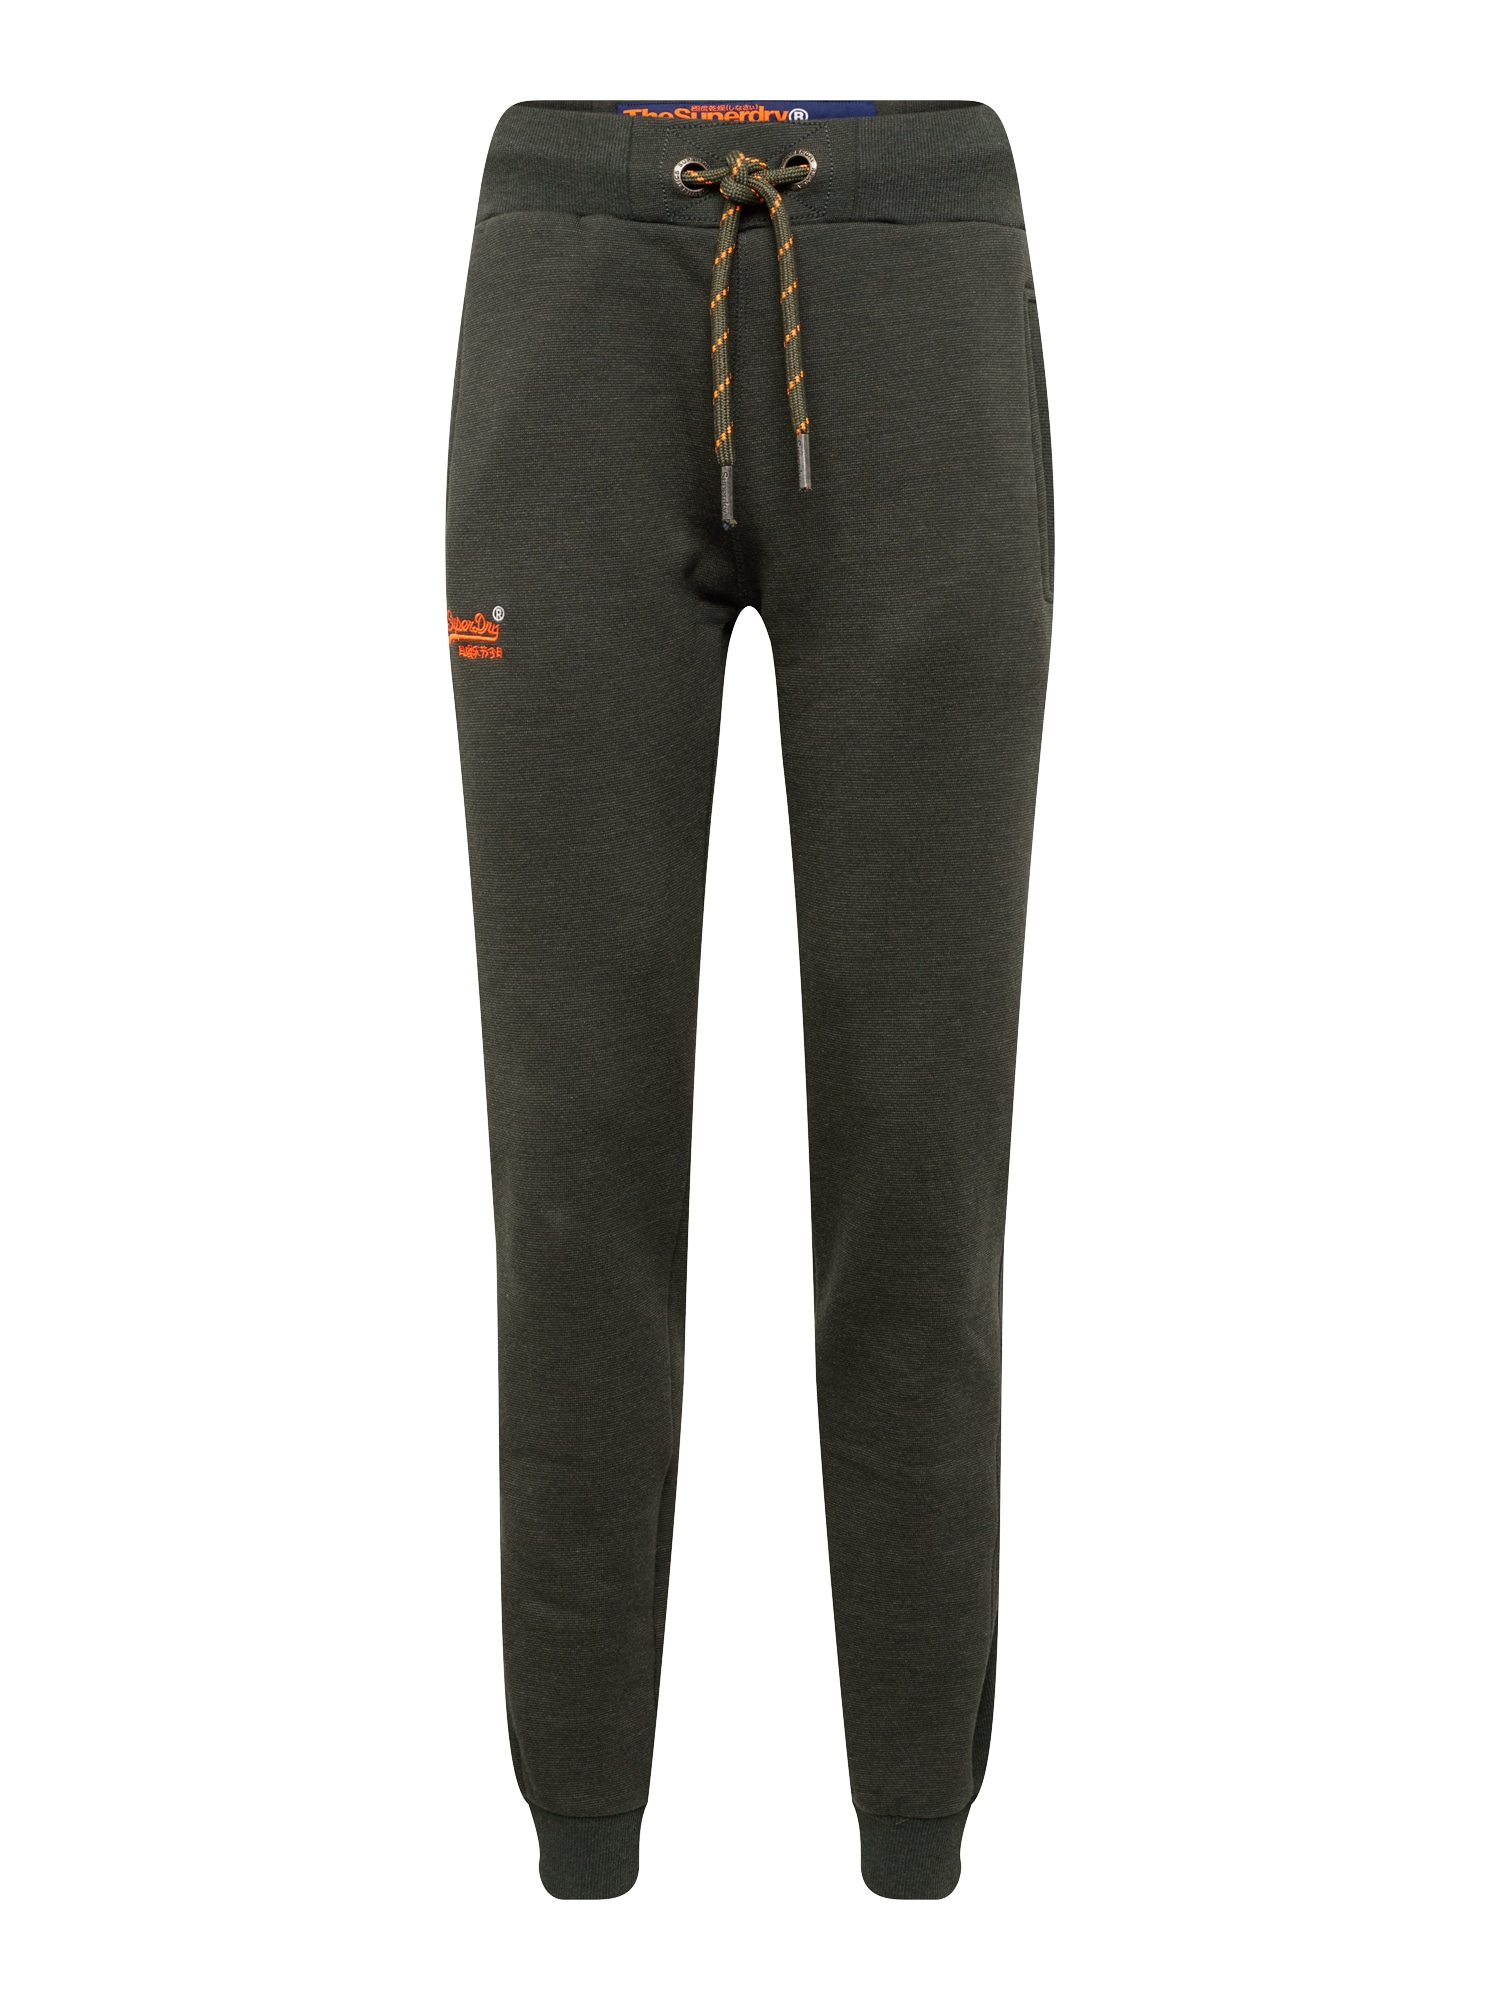 Kalhoty ORANGE LABEL CUFFED JOGGER antracitová Superdry